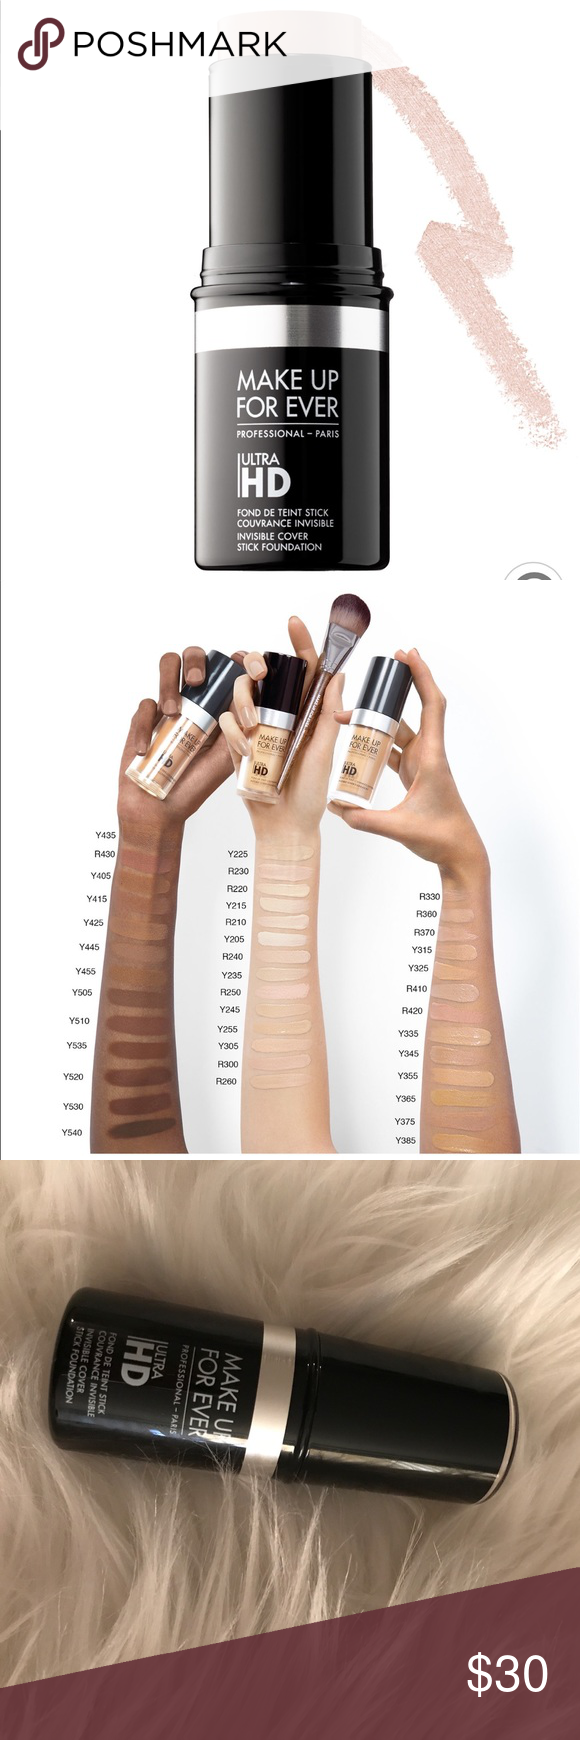 New Makeup Forever Ultra HD Foundation Stick Y205 Makeup